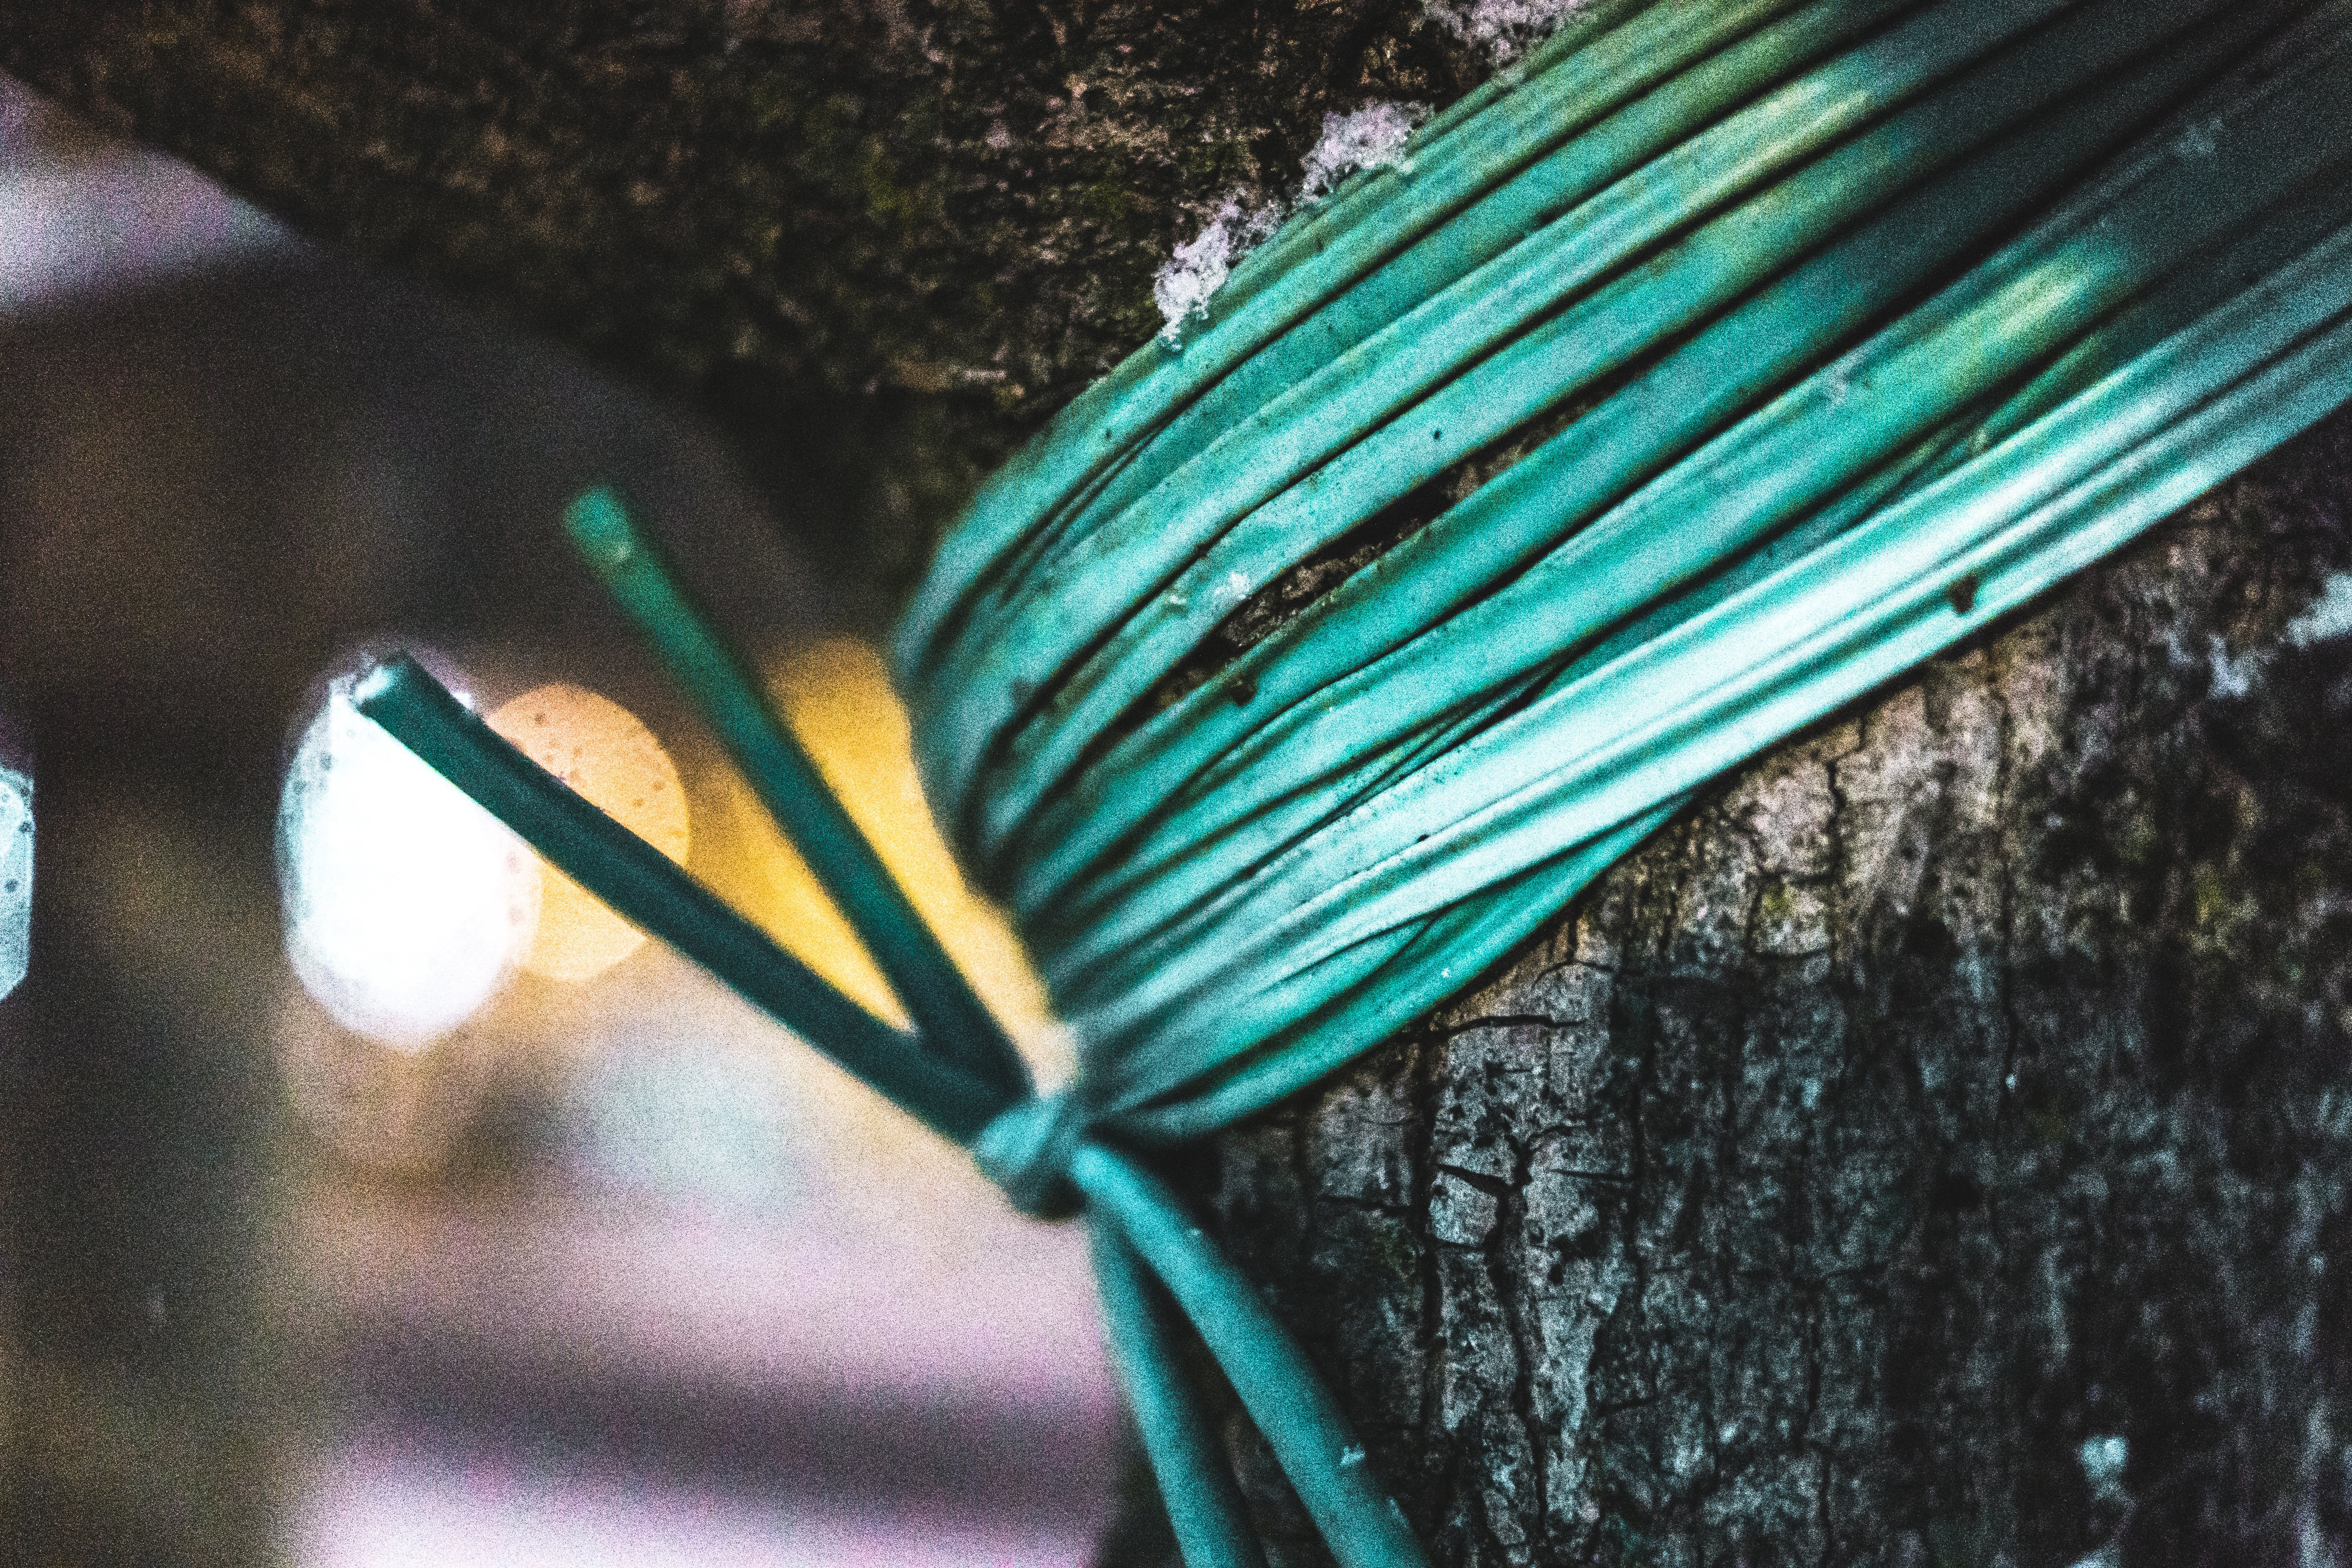 Green Rope Tied on Tree